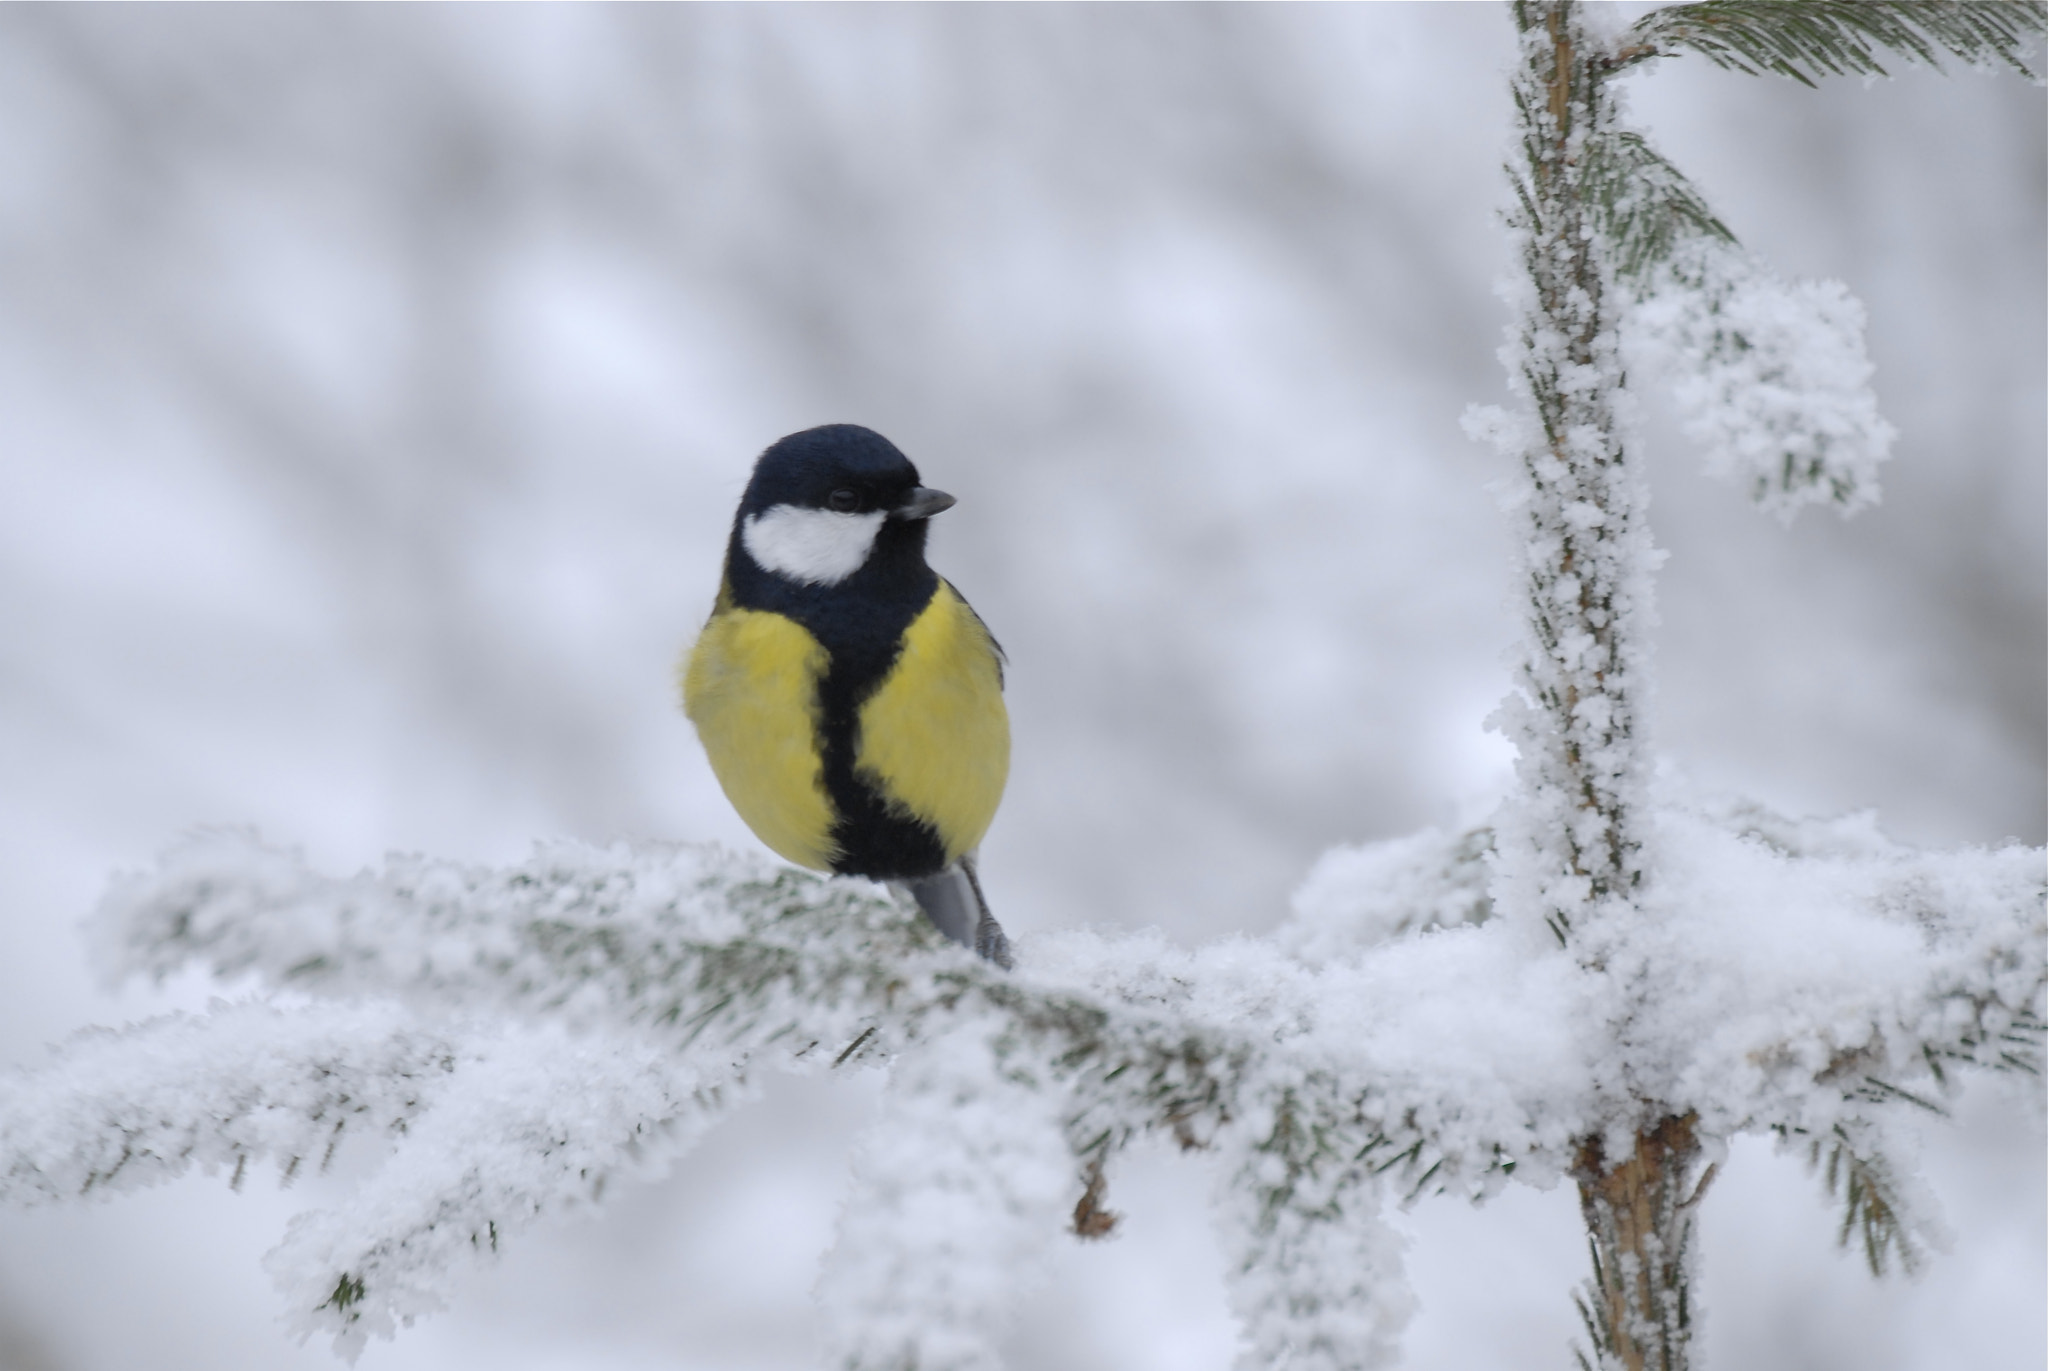 Photograph Parus major by Jere Ketola on 500px